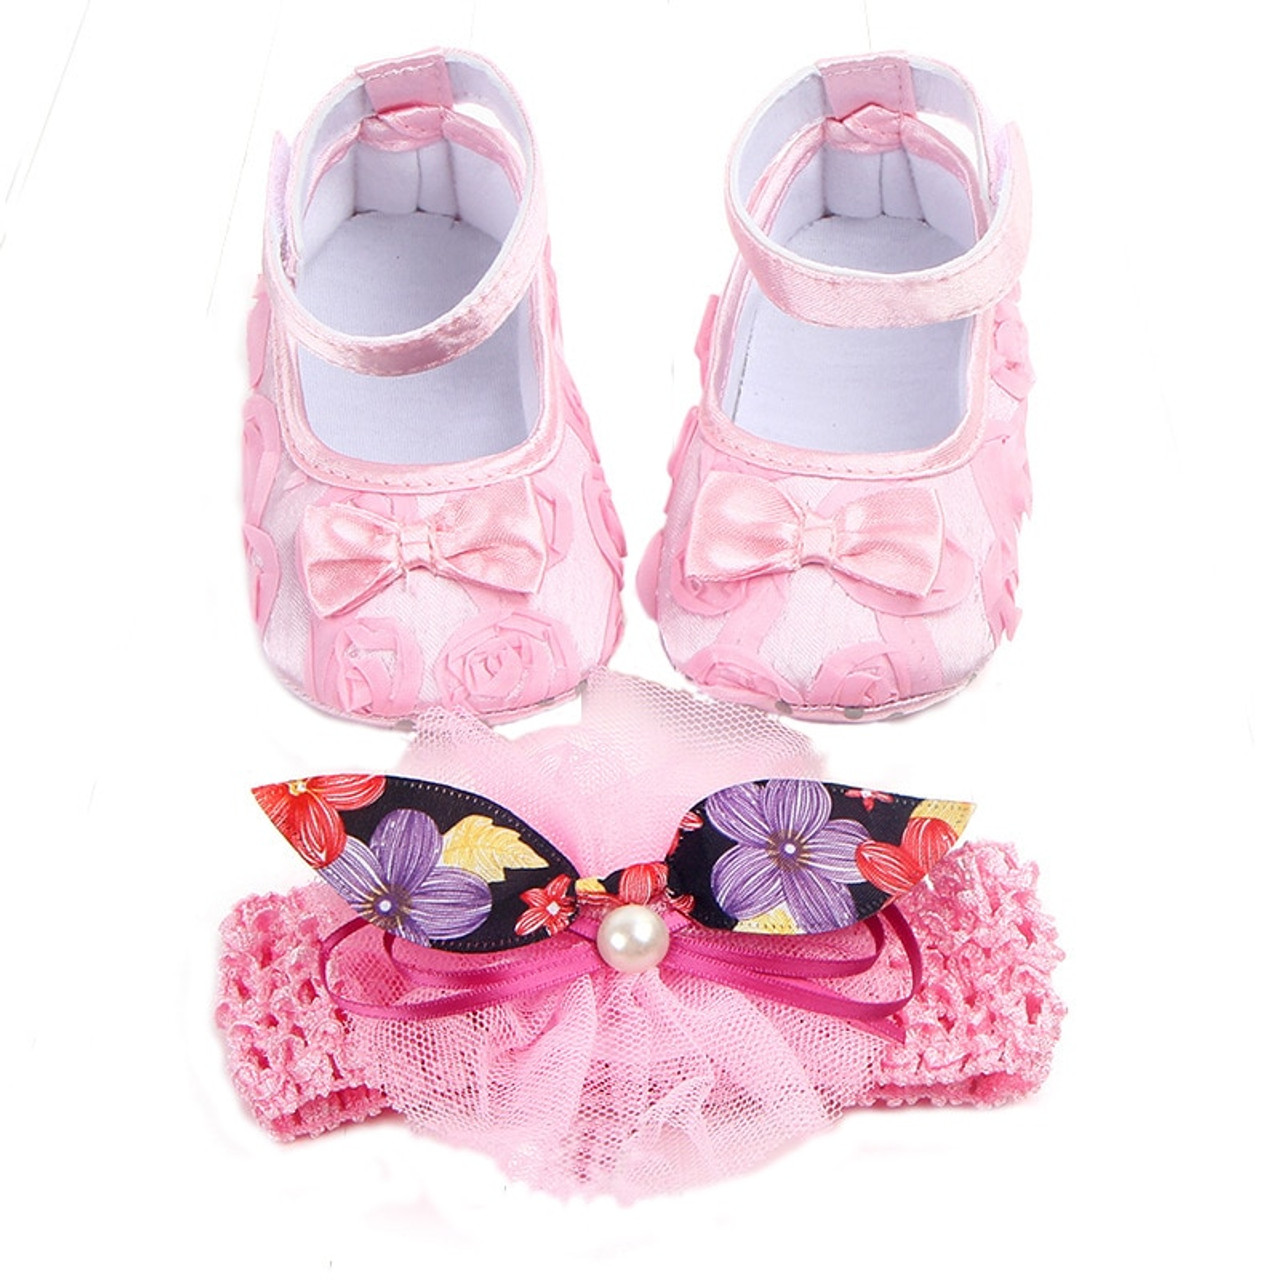 e2907c0f9 ... Baby Shoes Photo First Walkers Infant Footwear For Newborns Headdress  Set Head Flower Bows Toddler Soft ...